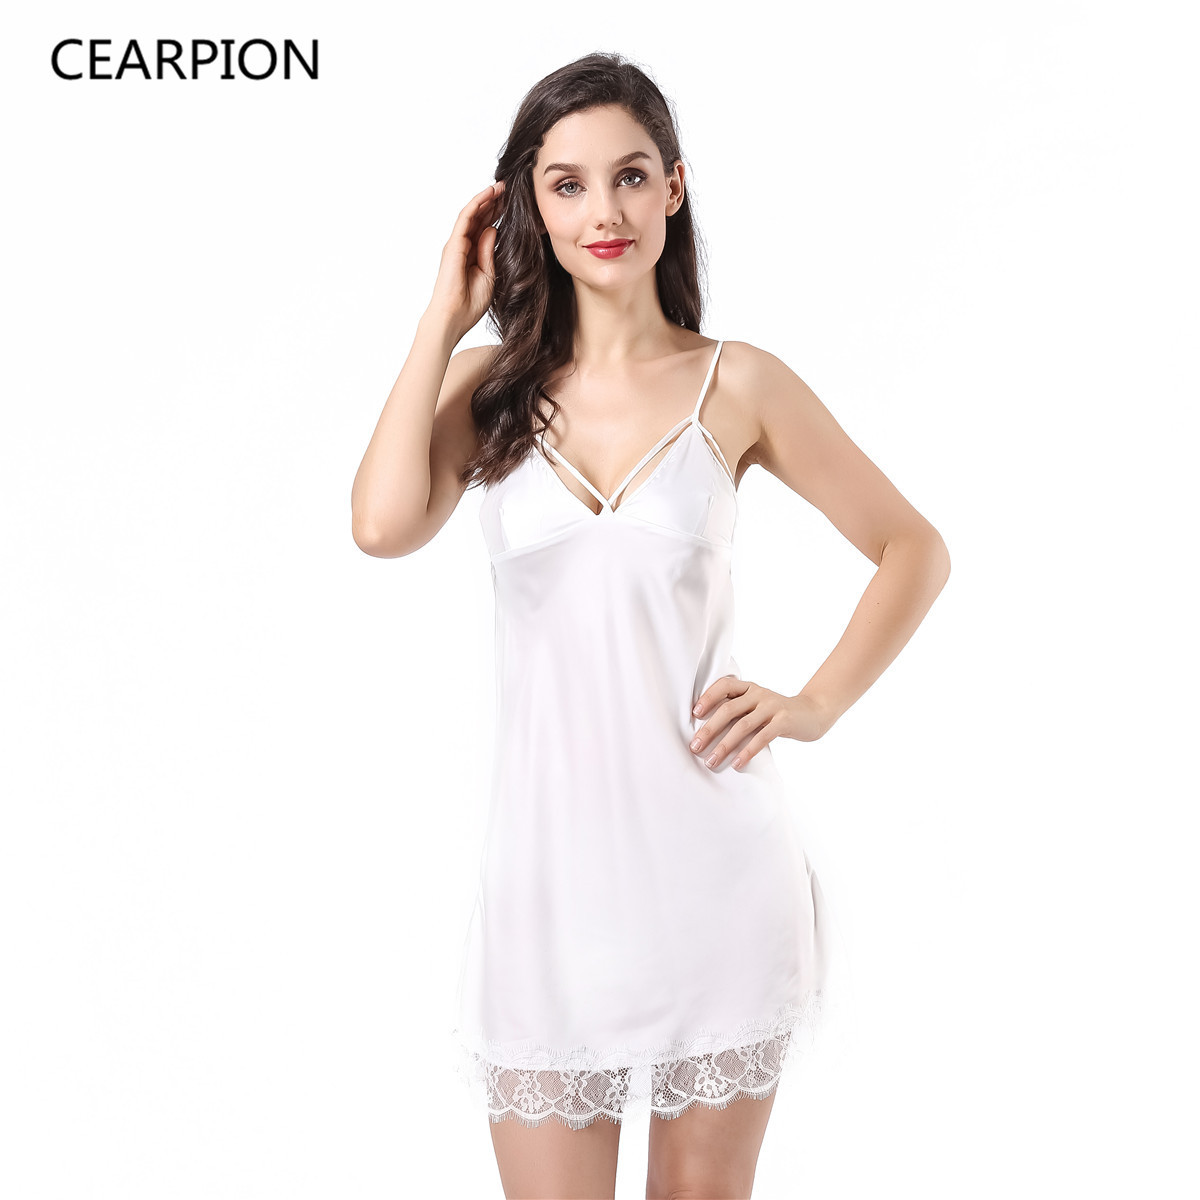 9045006b021 CEARPION Sexy Lace Nightgown Women s Nightwear Summer Sleepwear Bride  Bridesmaid Wedding Dress Gown Satin V-